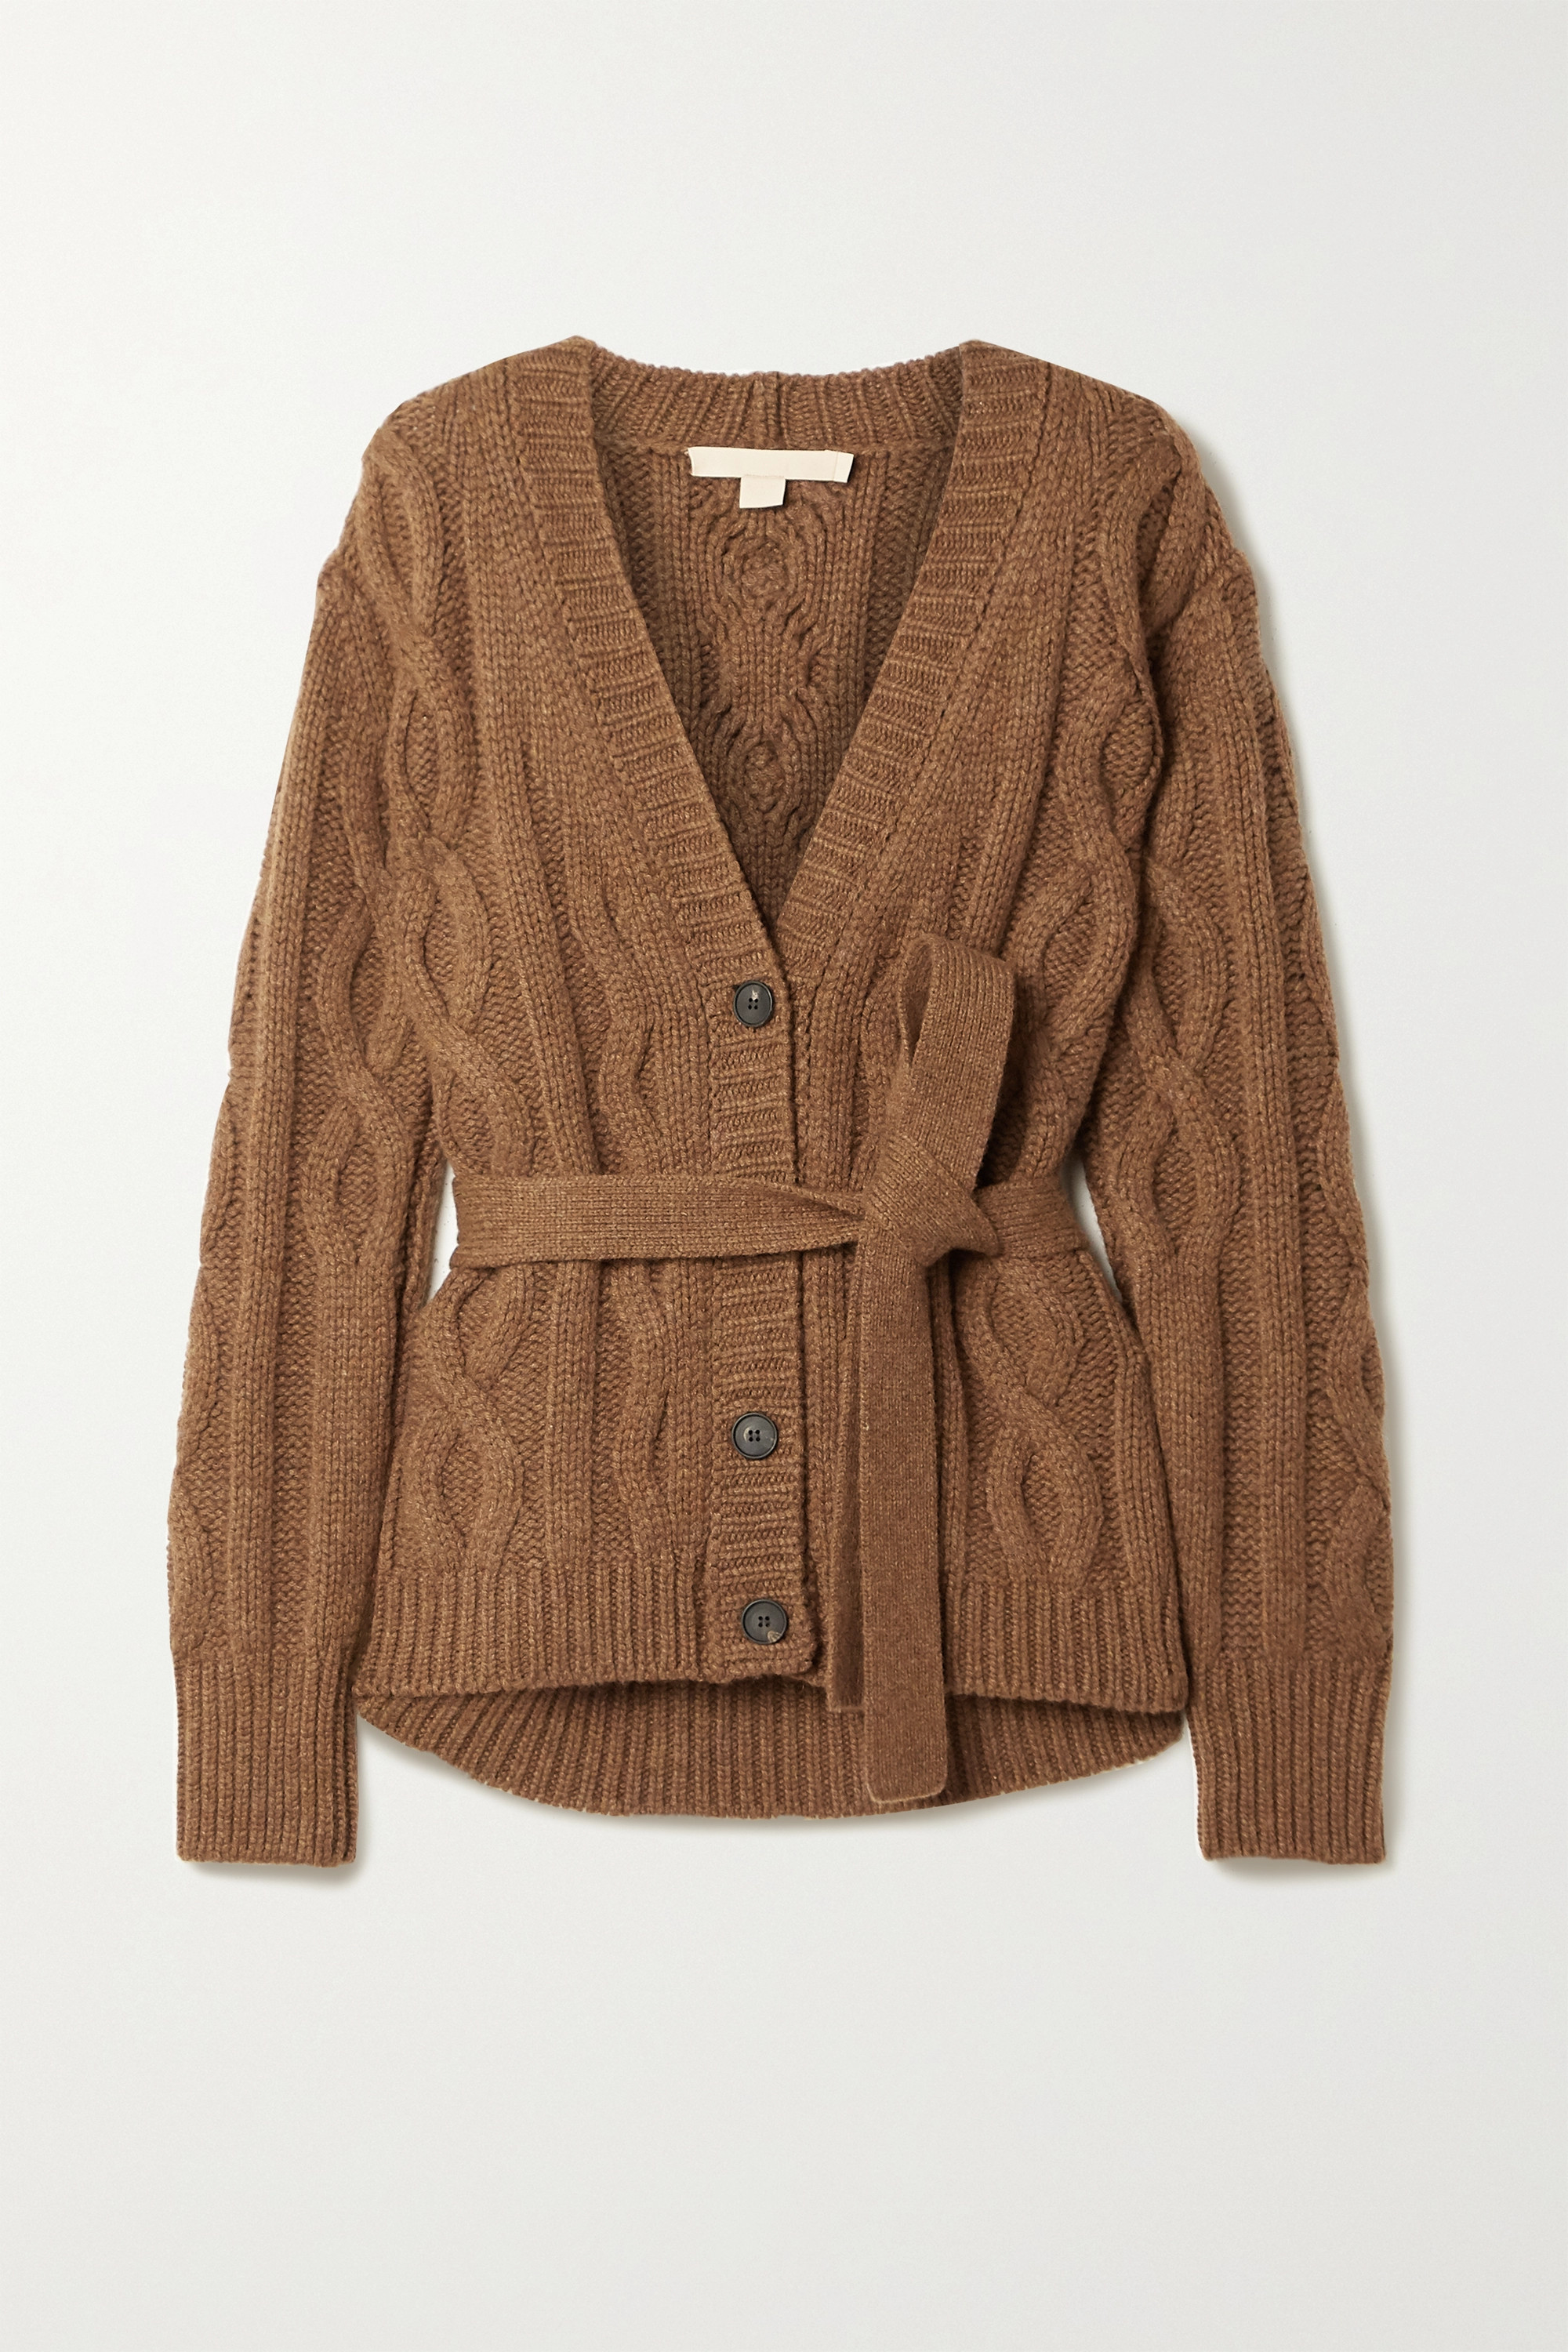 Brock Collection Belted cable-knit cashmere cardigan